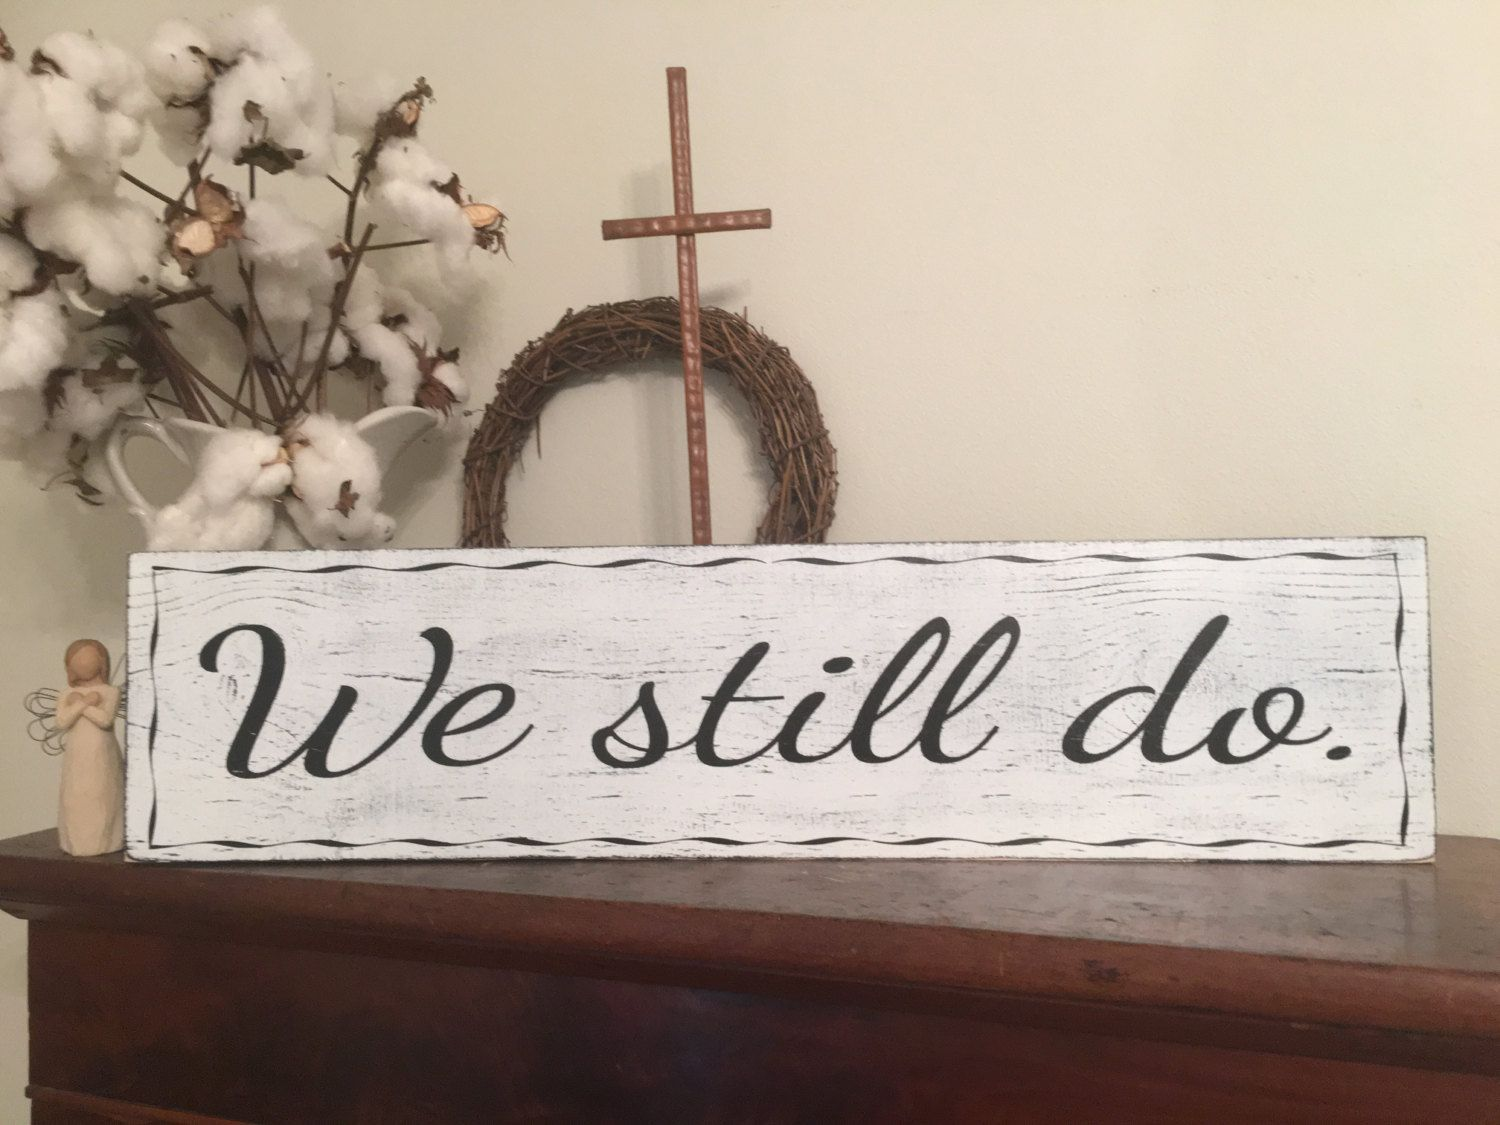 Wall Signs Decor Prepossessing We Still Do Sign Fixer Upper Inspired Signs30X725 Rustic Wood 2018